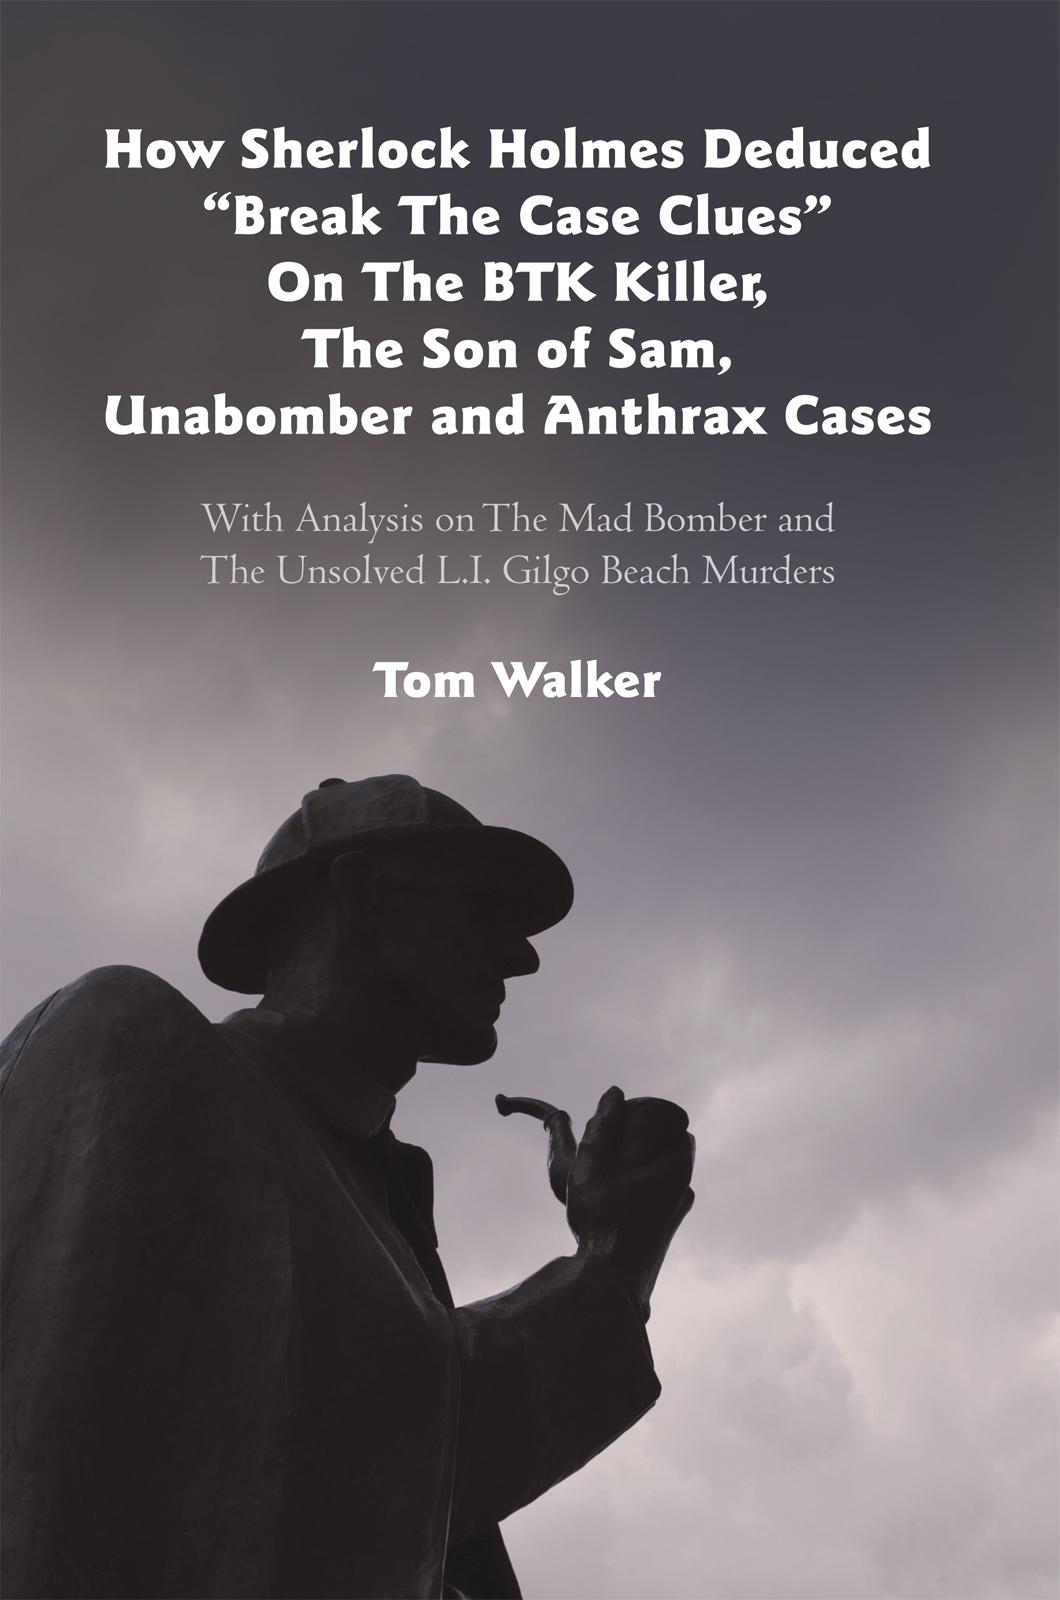 "How Sherlock Holmes Deduced ""Break The Case Clues"" On The BTK Killer, The Son of Sam, Unabomber and Anthrax Cases By: Tom Walker"